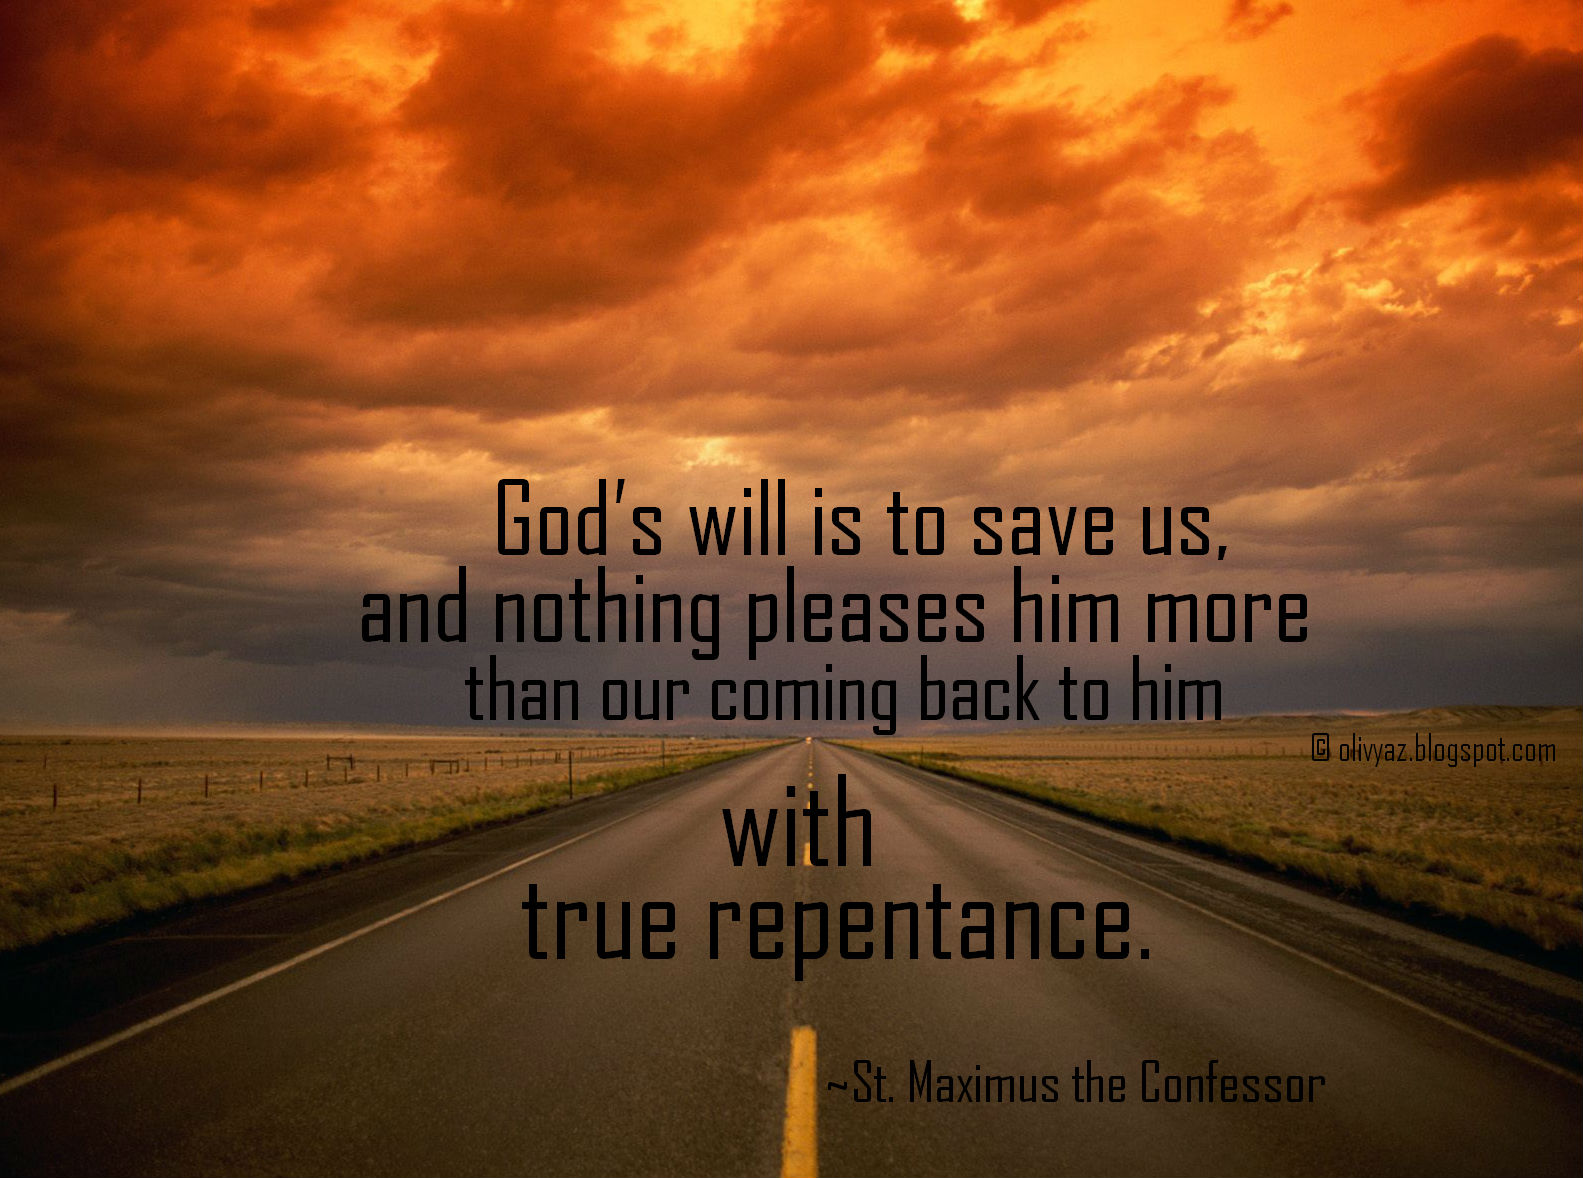 Christian Quotes About Forgiveness Quotesgram: Christian Repentance Quotes. QuotesGram